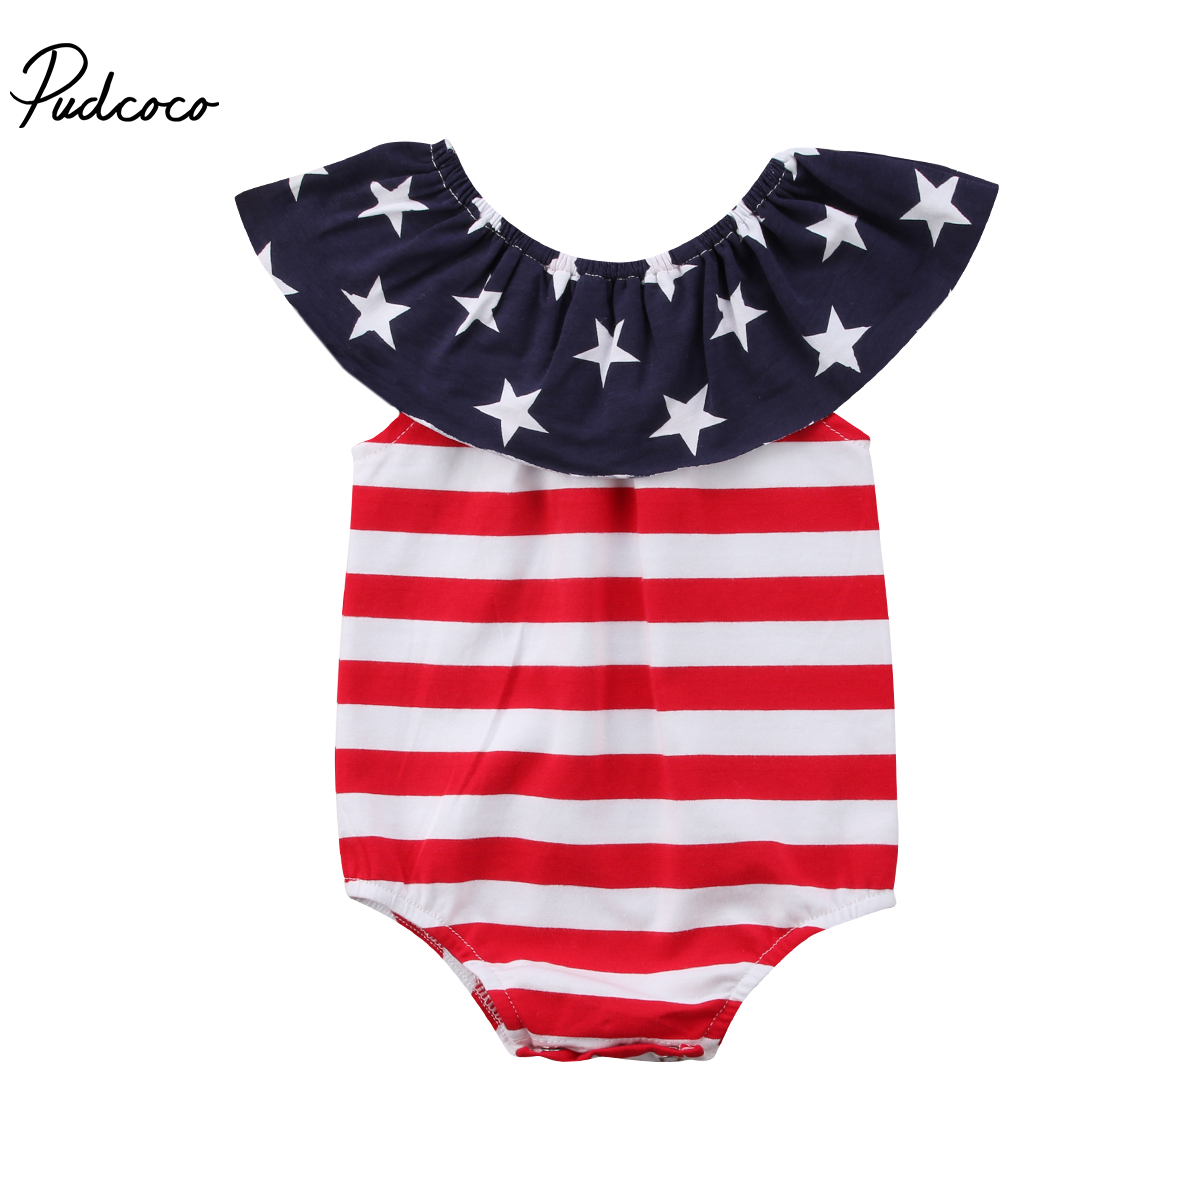 Pudcoco 4th of july Newborn Baby Boy Girls Stripes Star Print Romper Sunsuit Infant Summer Clothes Outfits 3pcs set newborn infant baby boy girl clothes 2017 summer short sleeve leopard floral romper bodysuit headband shoes outfits